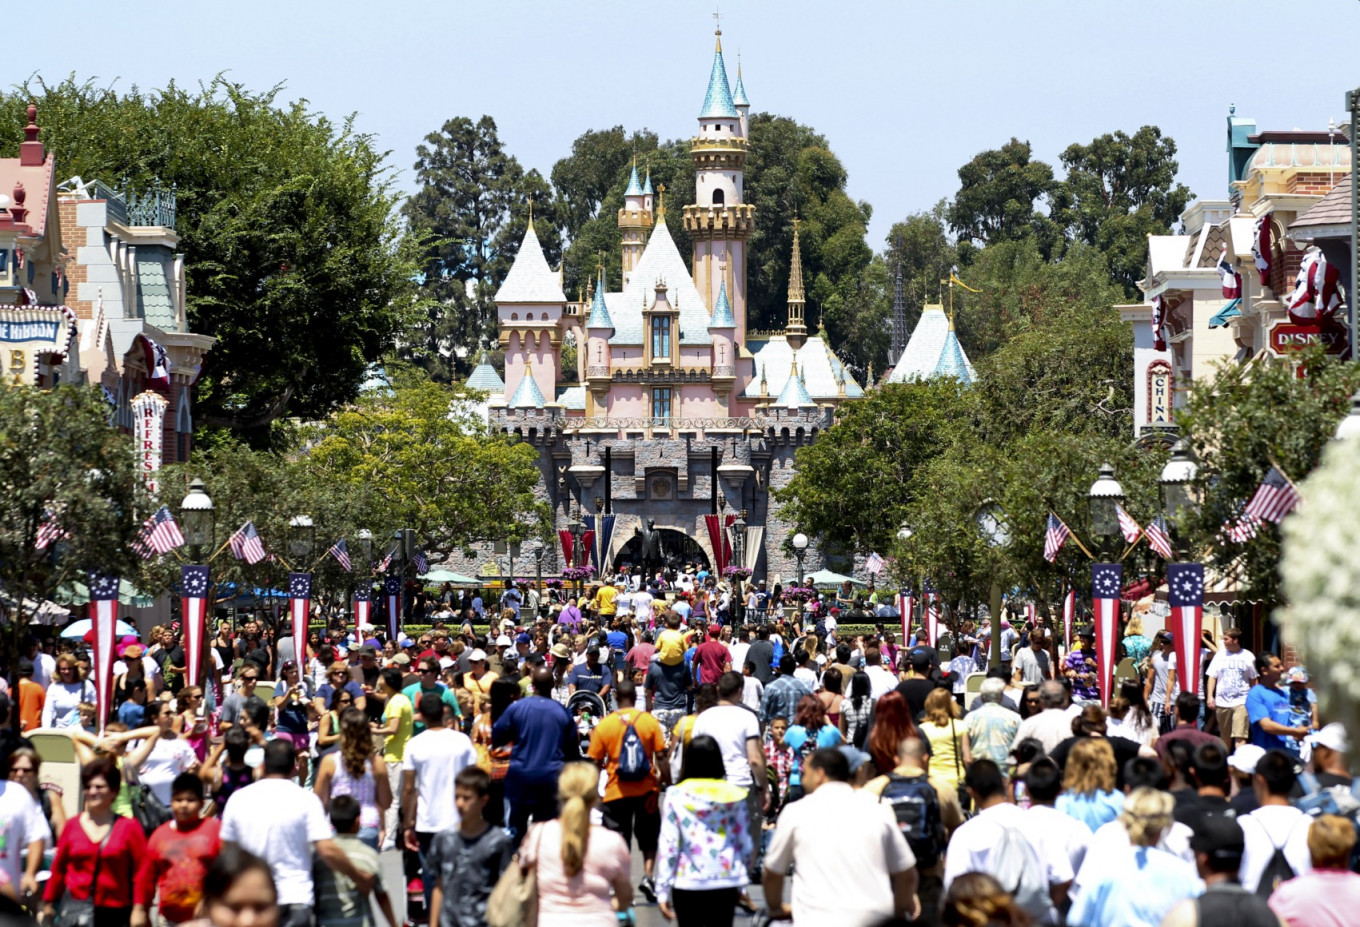 Disney raises California park prices 10% to almost $150 per day